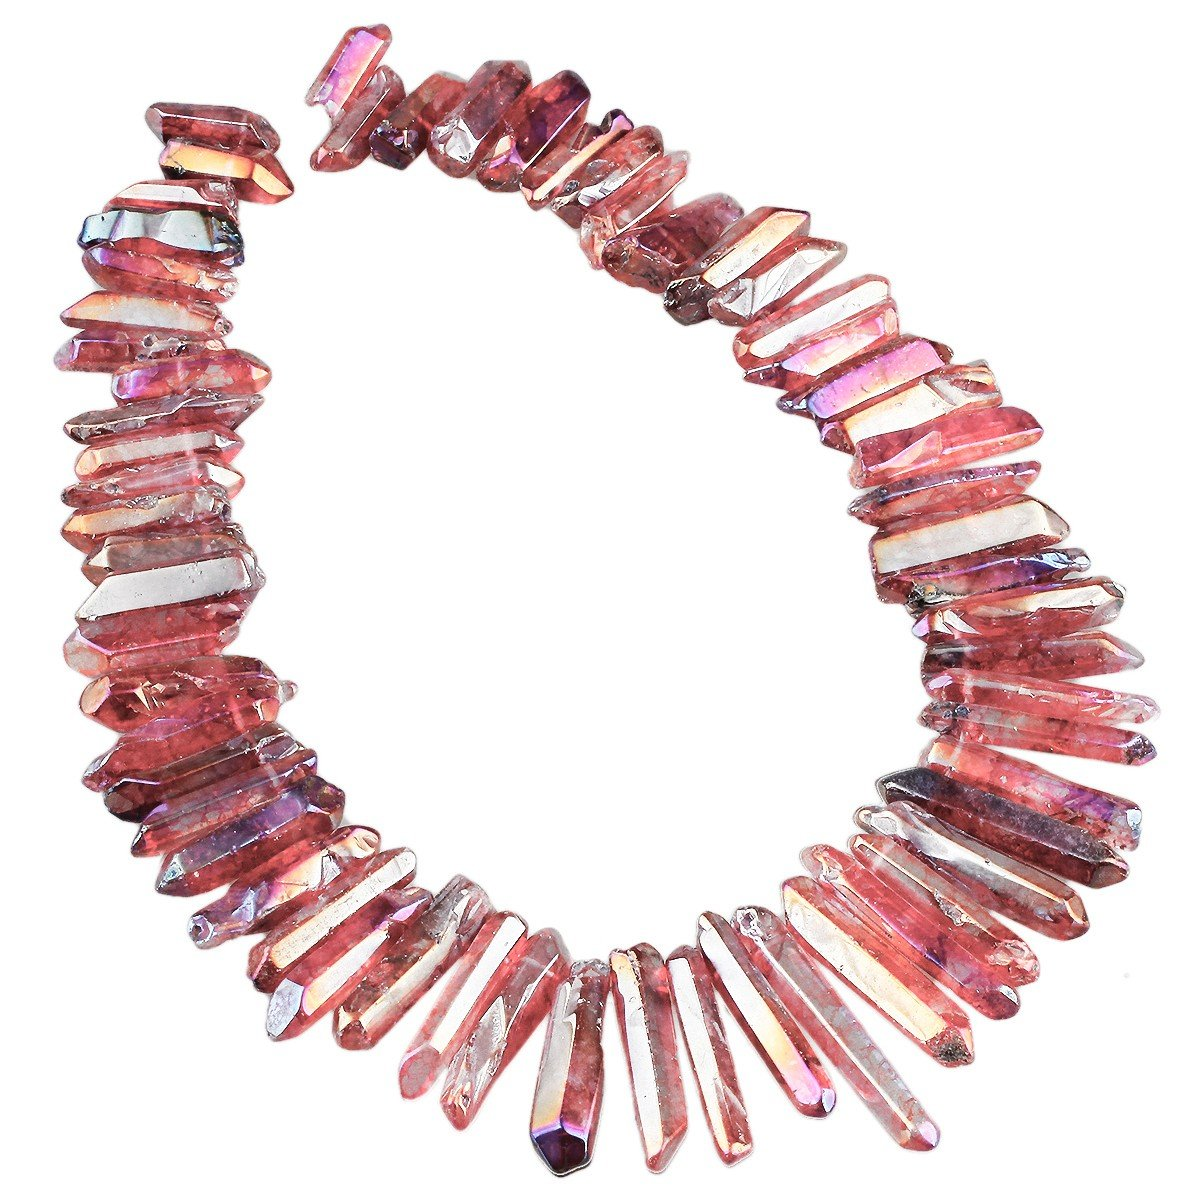 rockcloud Natural Rock Crystal Points Titanium Coated Clear Quartz Sticks Spikes Top Drilled 15 inch Strand, Pink& Blue 4336814887